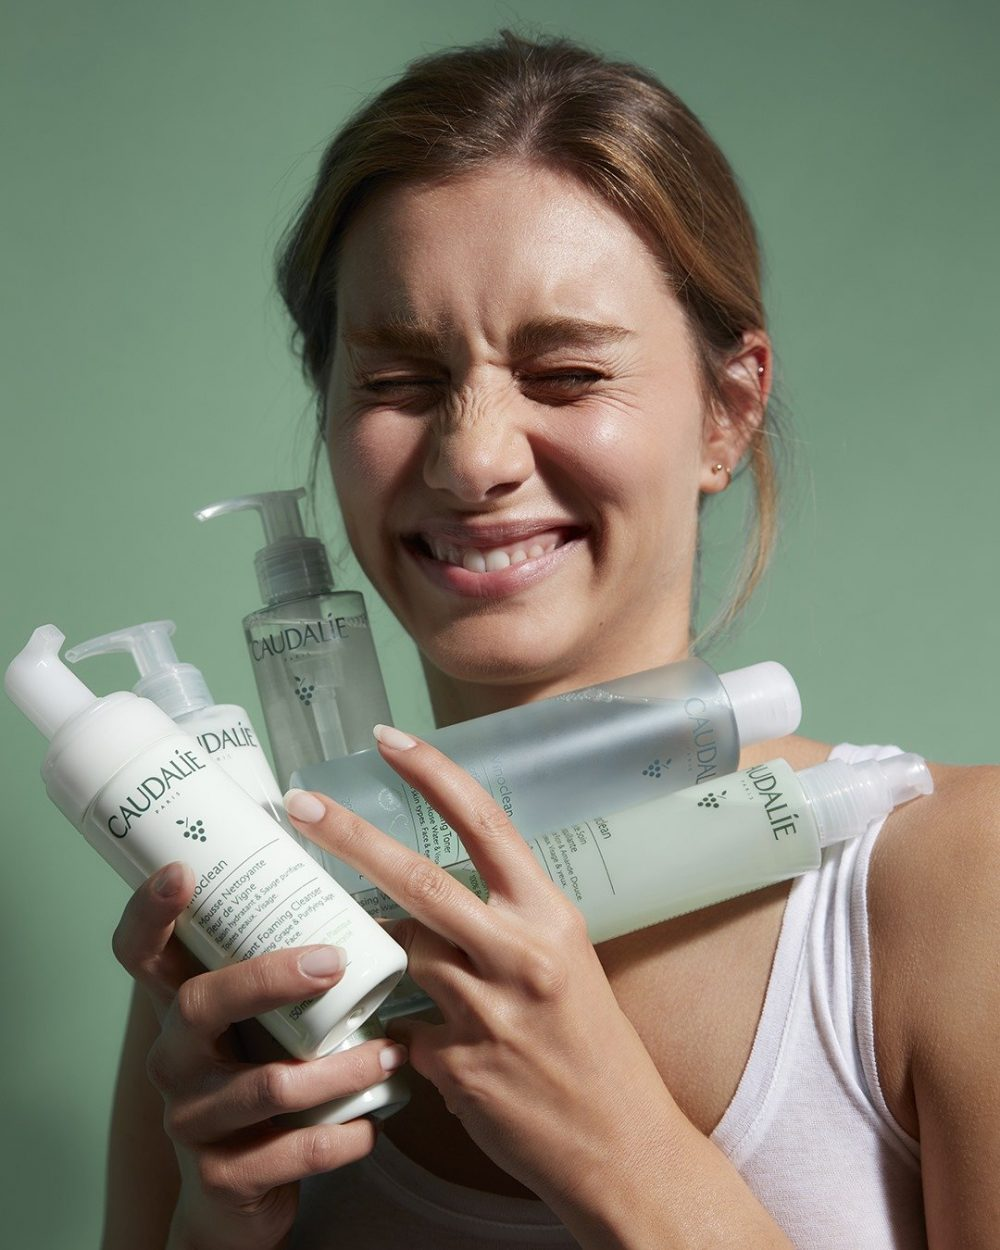 Caudalie's New Range of Vincolean Facial Cleansers